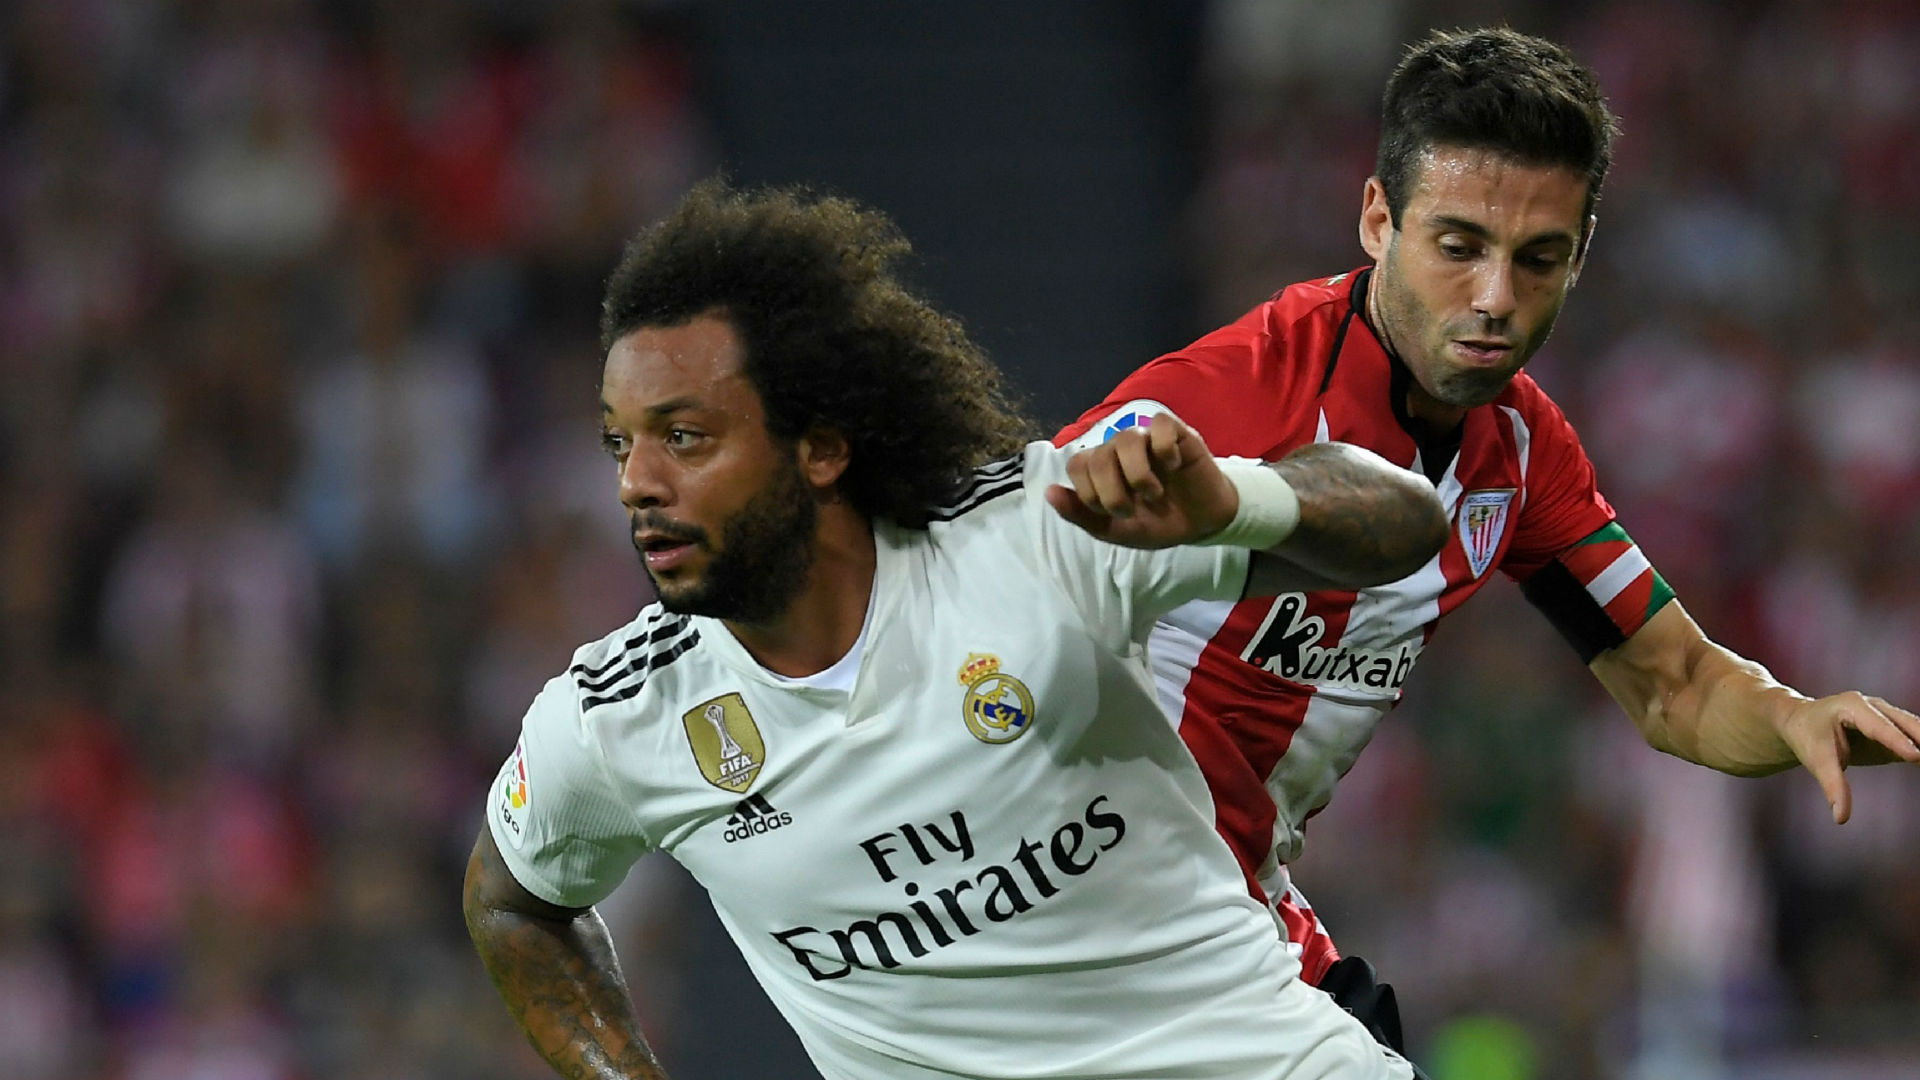 Marcelo Markel Susaeta Real Madrid Athletic Bilbao